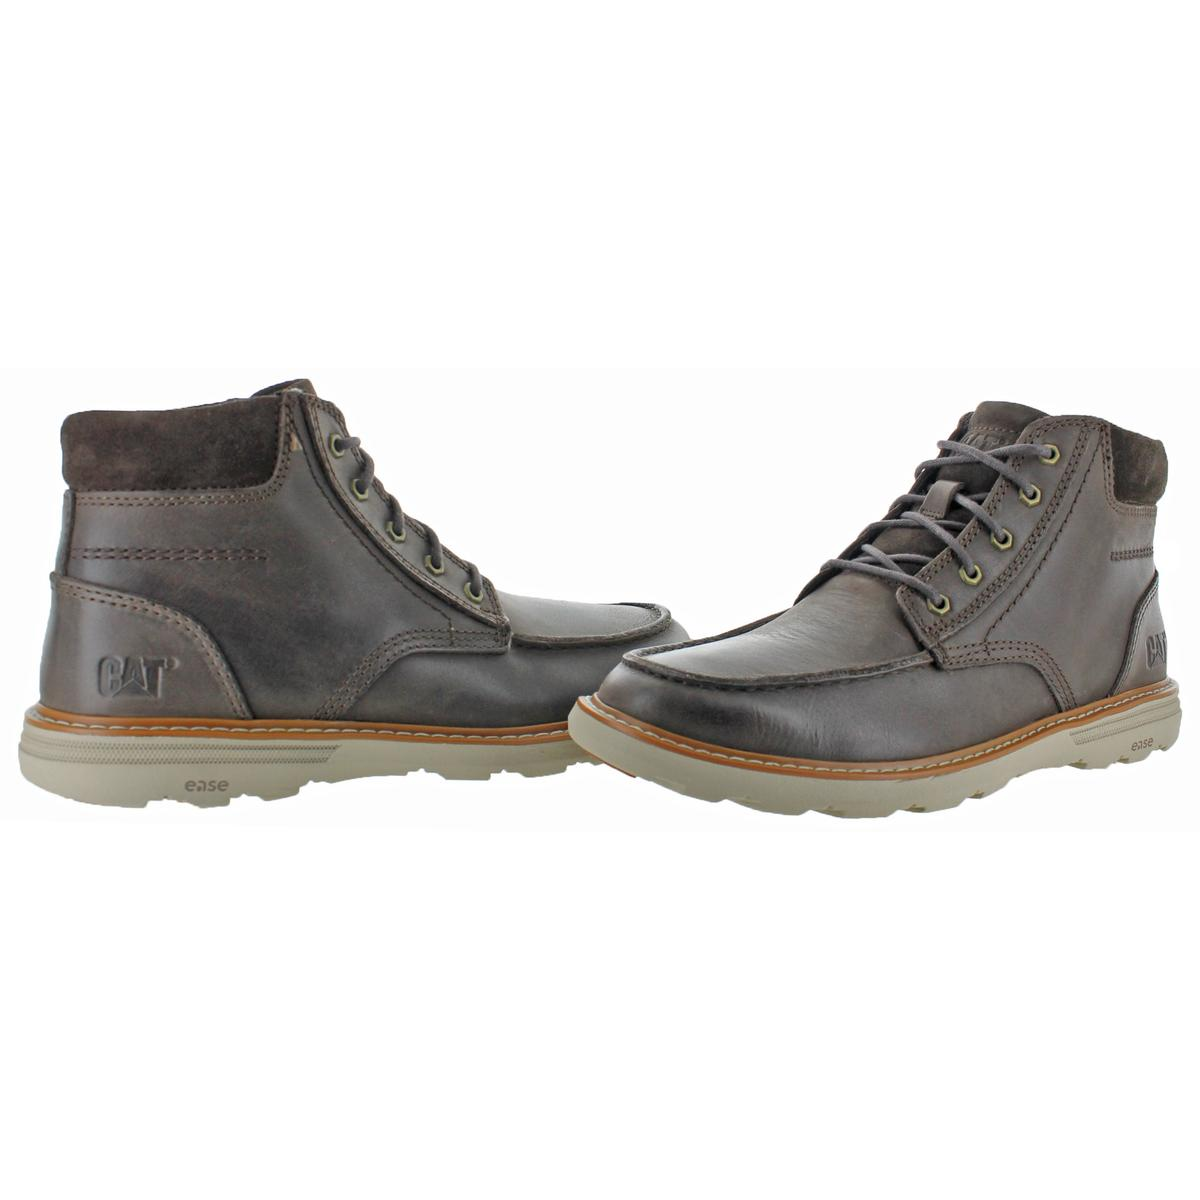 2427f2690ca82 Caterpillar Cat Duke Men's Leather Lace-Up Lightweight Casual Ankle ...